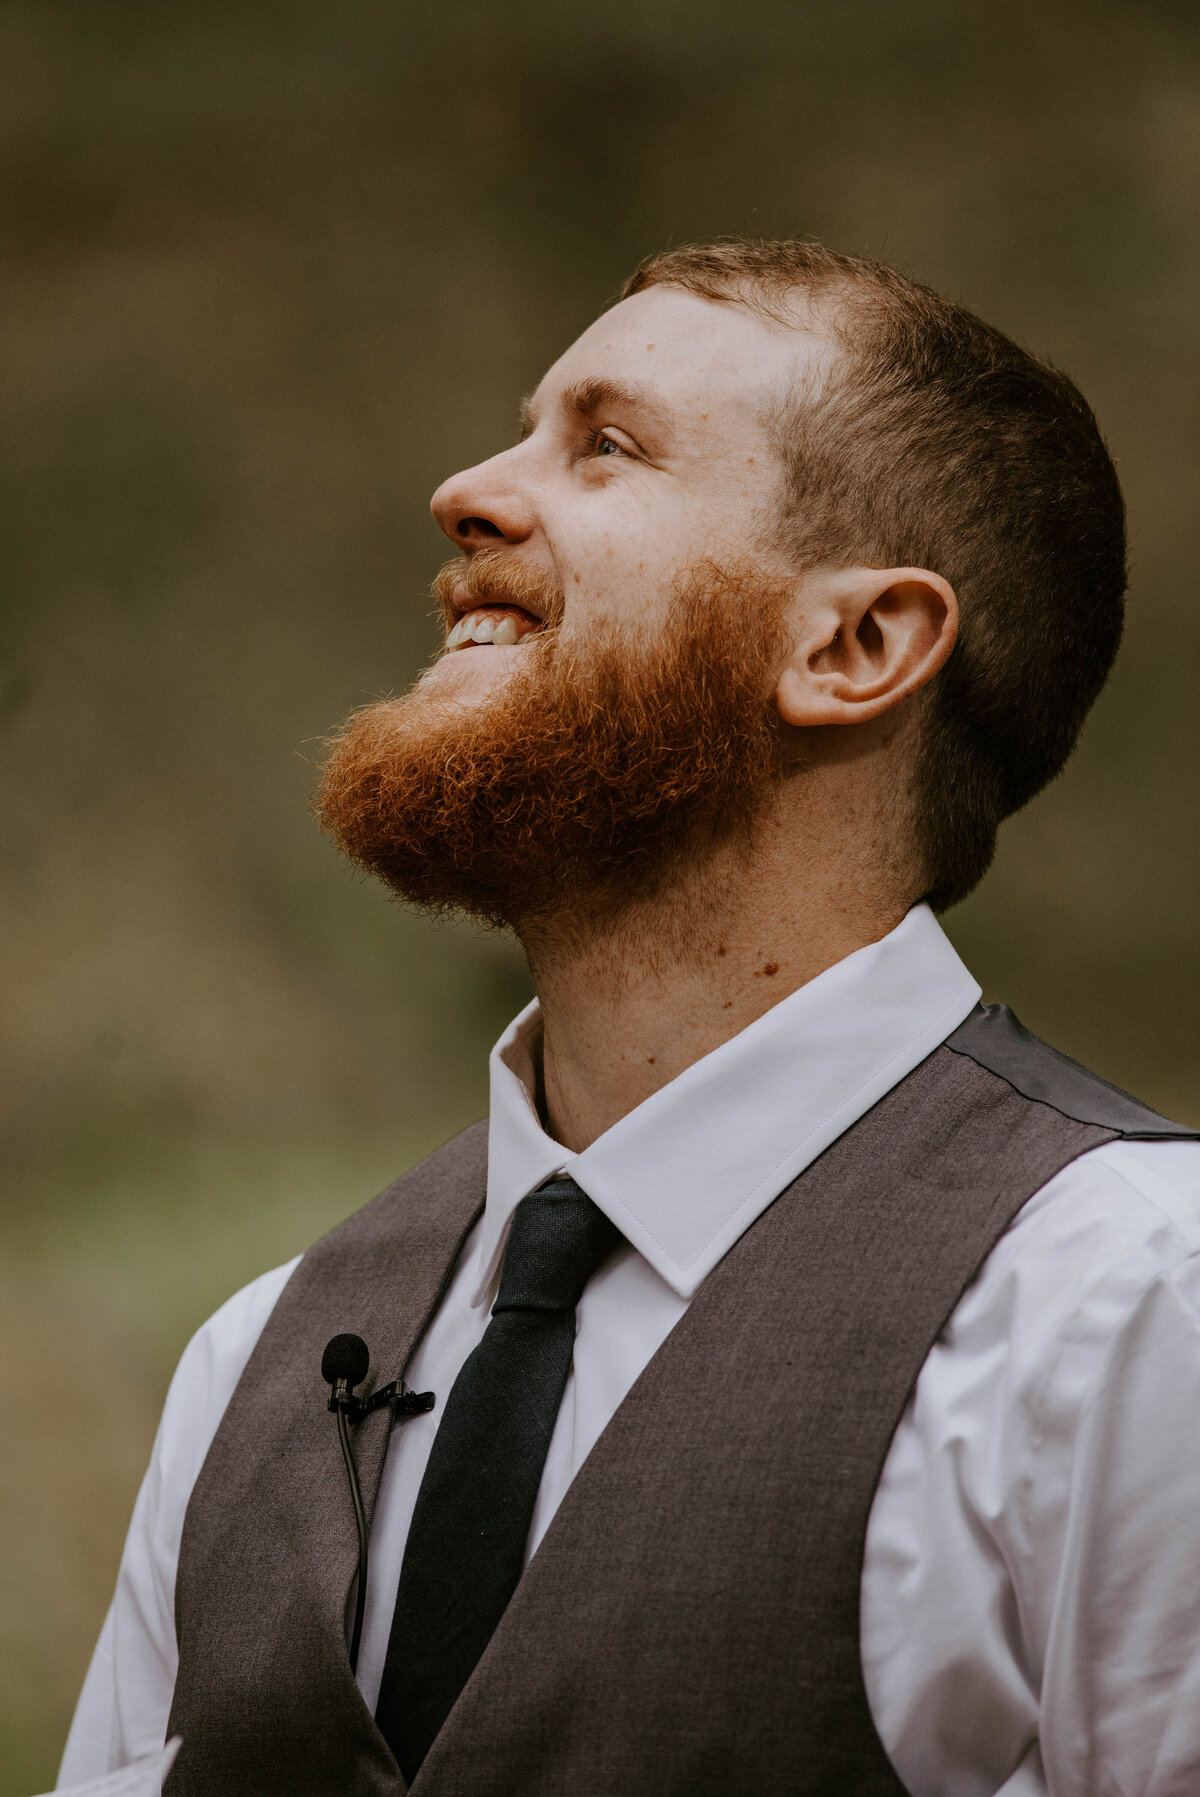 ochoco-forest-central-oregon-elopement-pnw-woods-wedding-covid-bend-photographer-inspiration3705